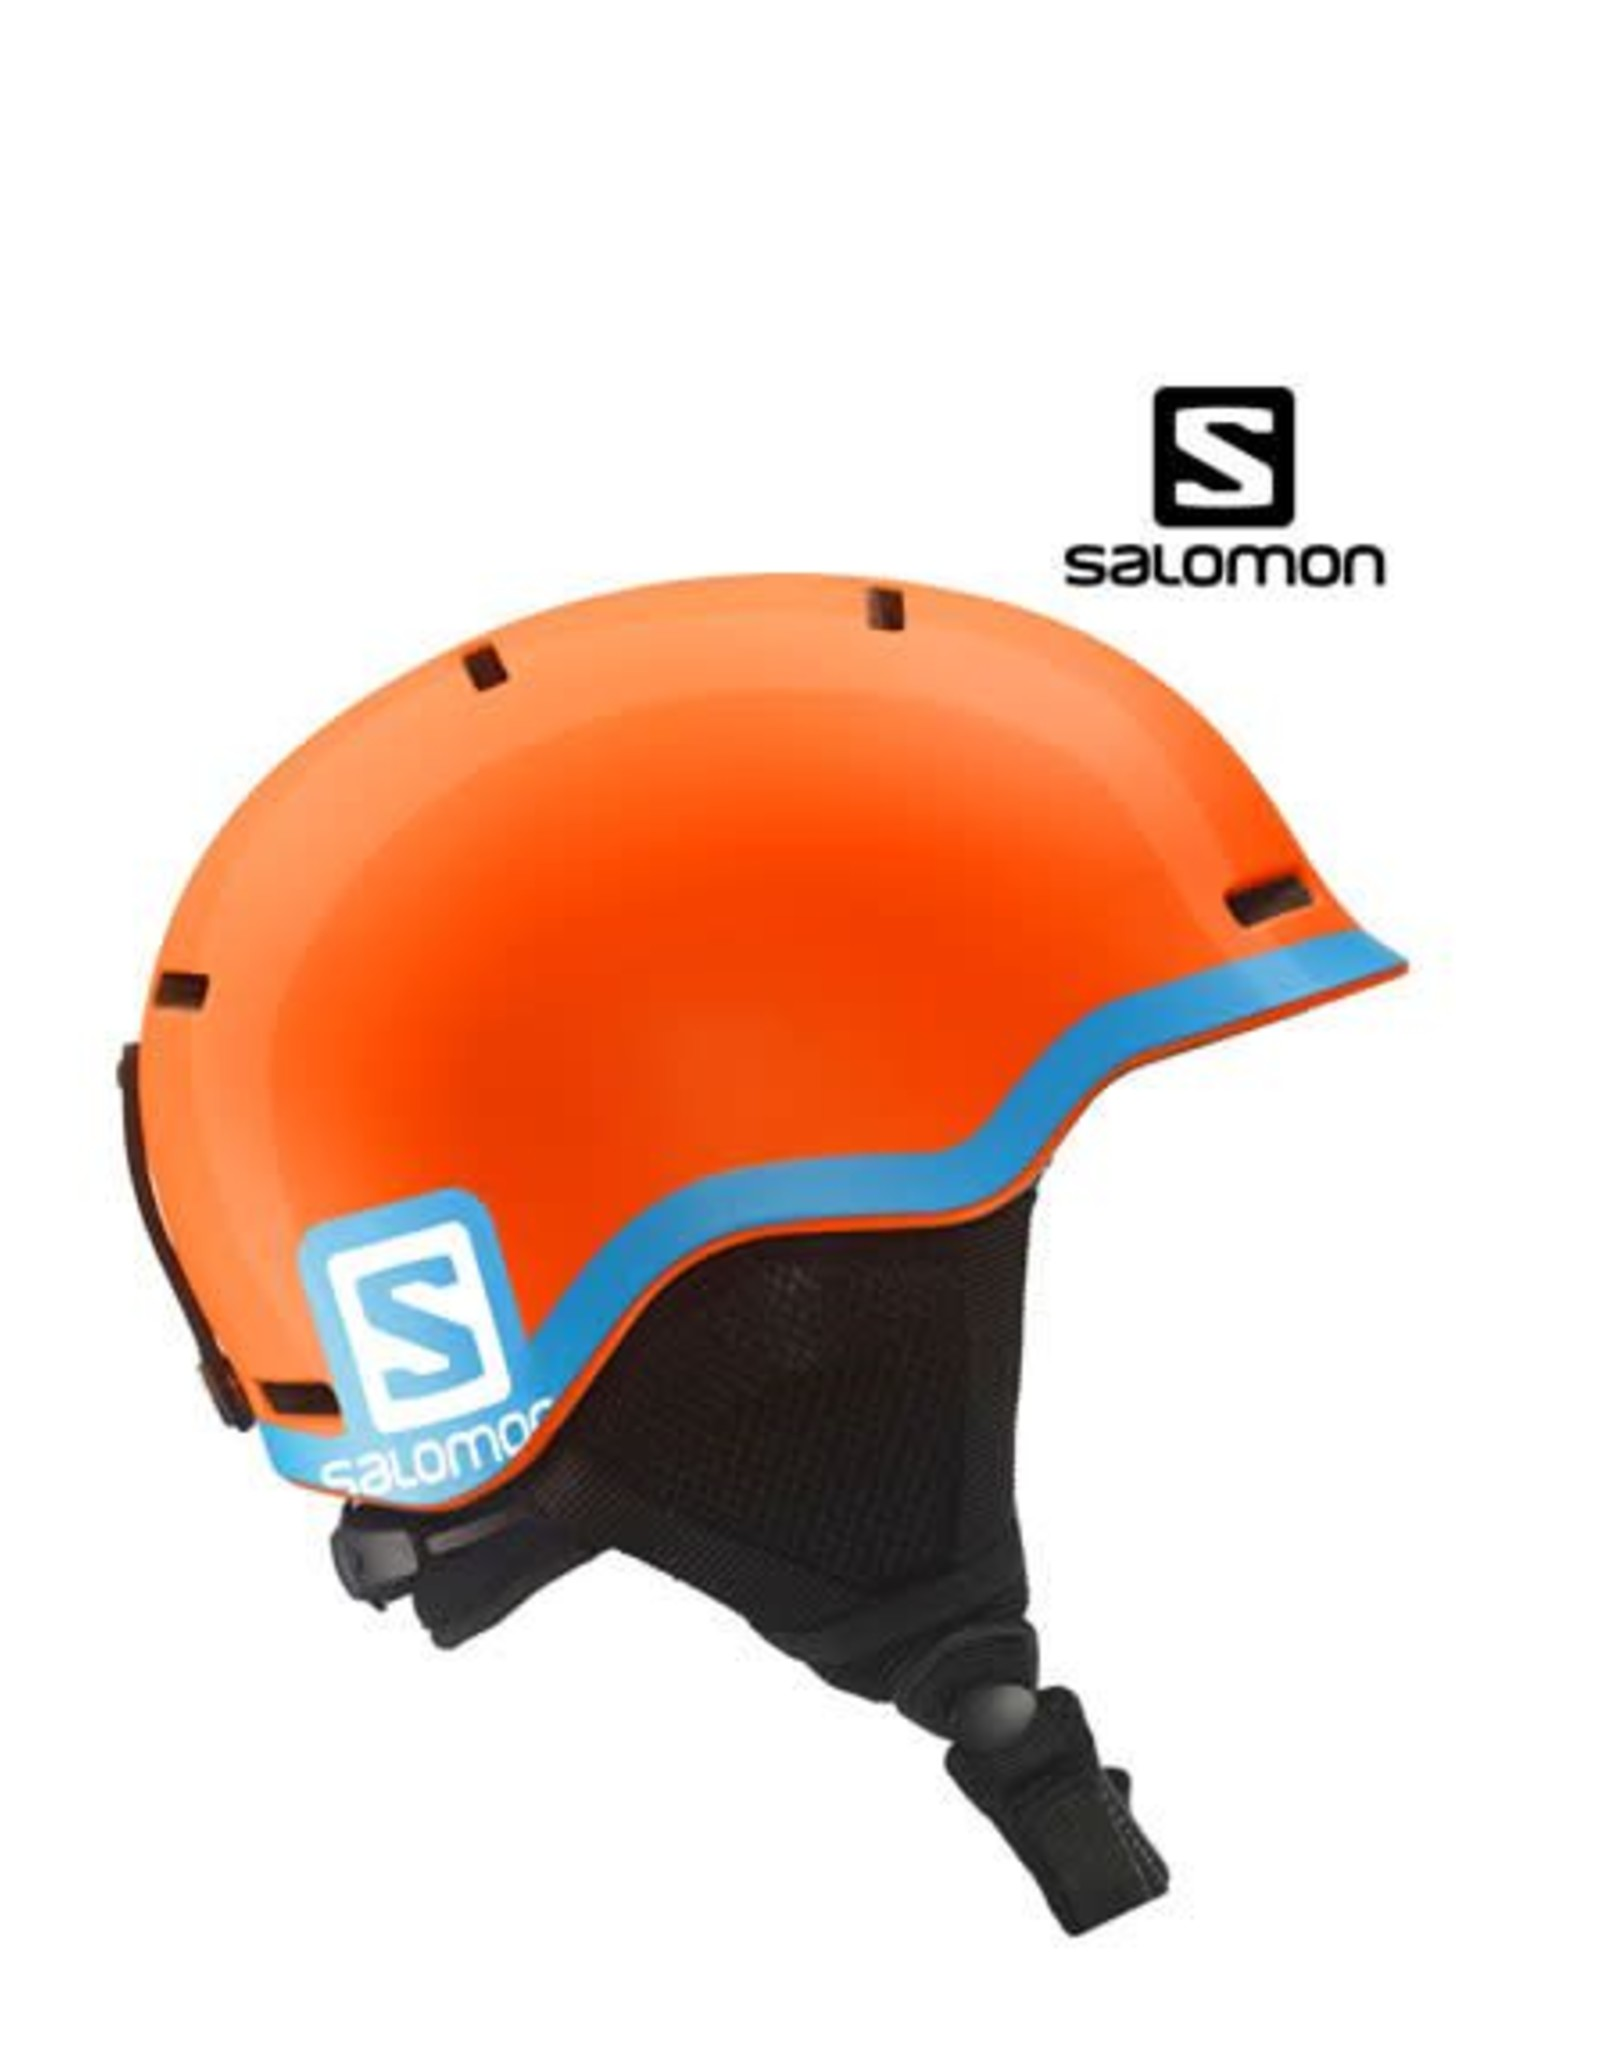 SALOMON Skihelm GROM Orange/blue mt S (49/53)